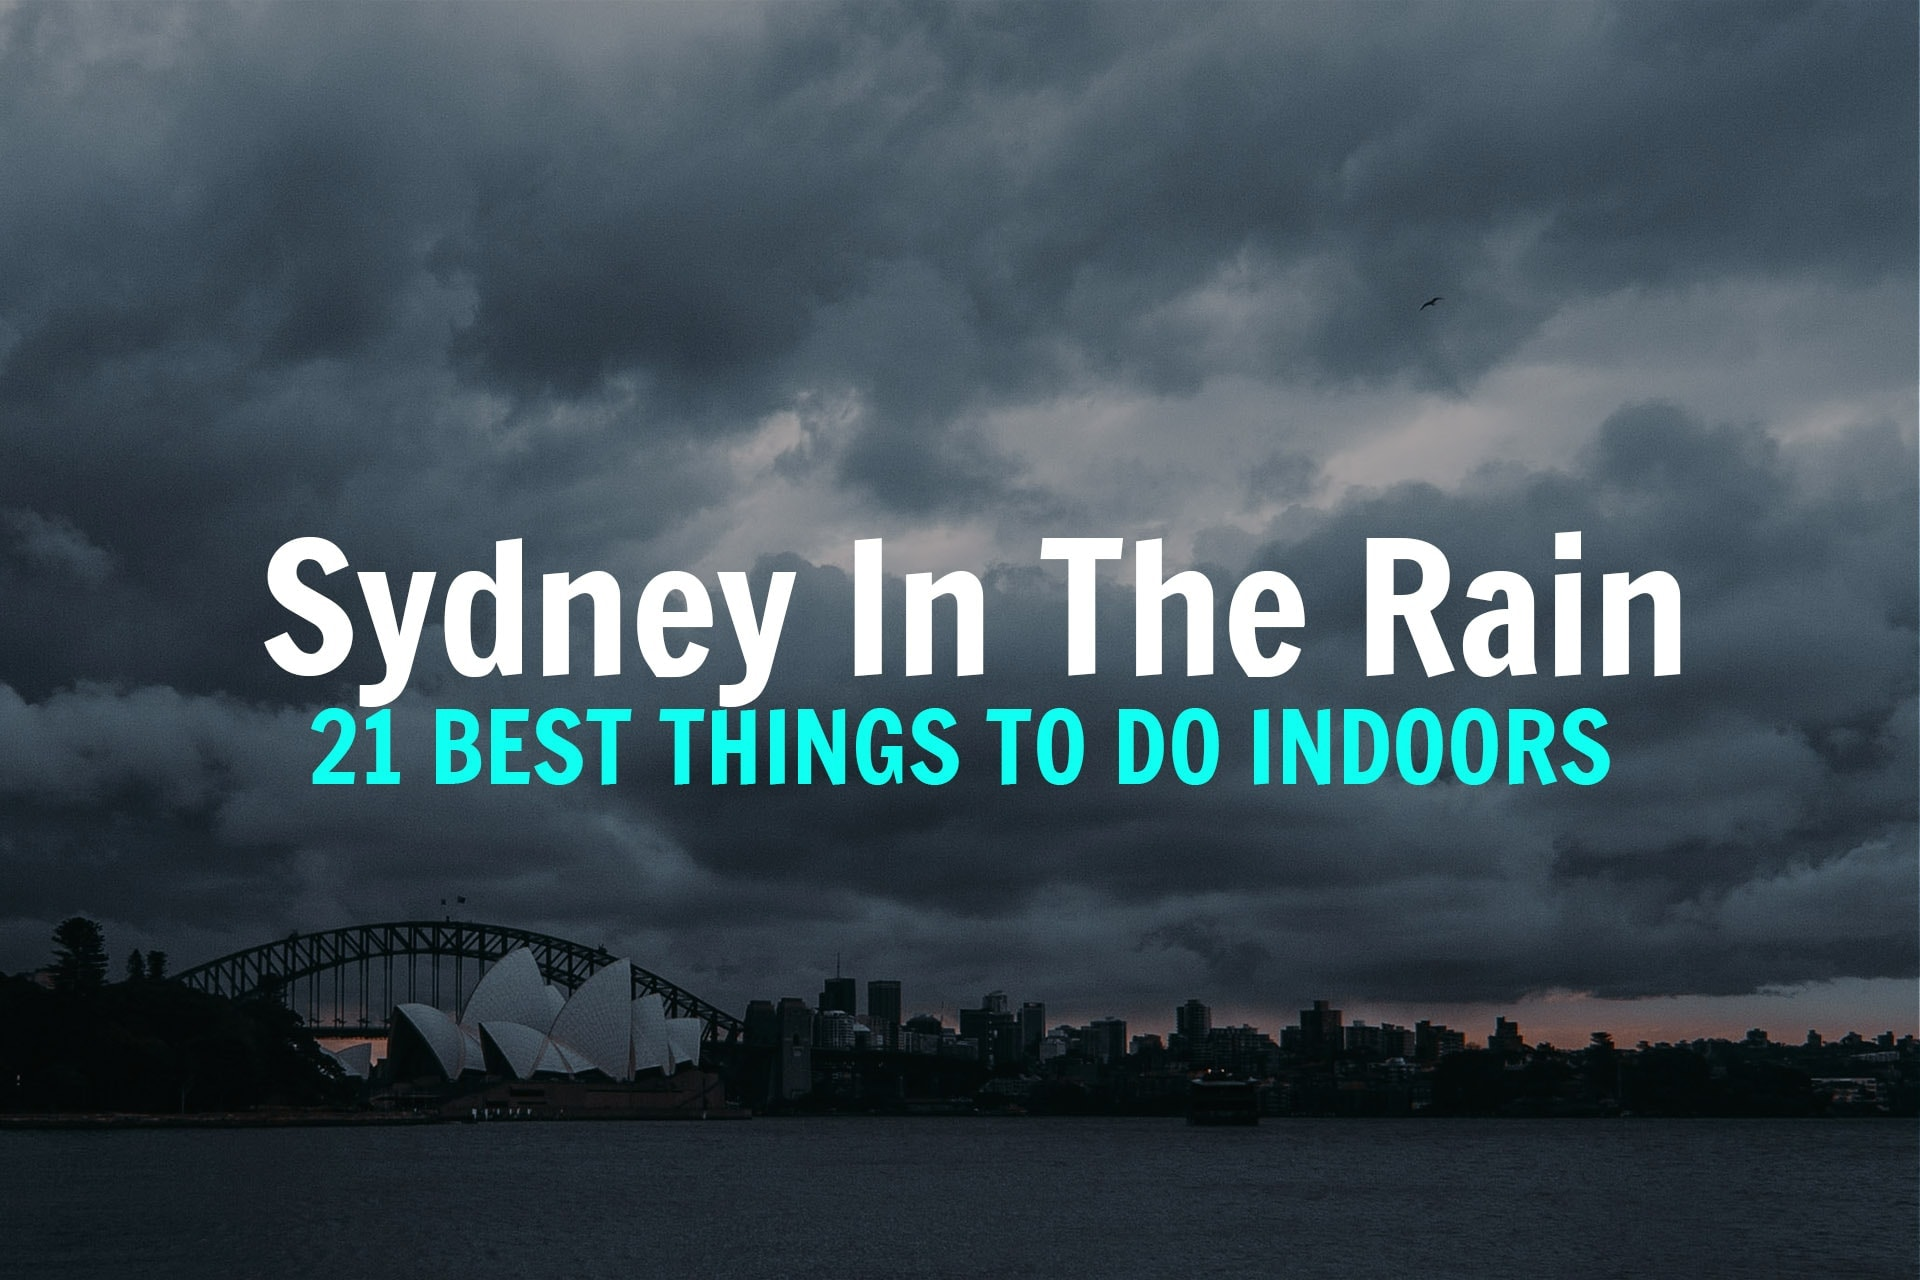 THINGS-TO-DO-IN-THE-RAIN